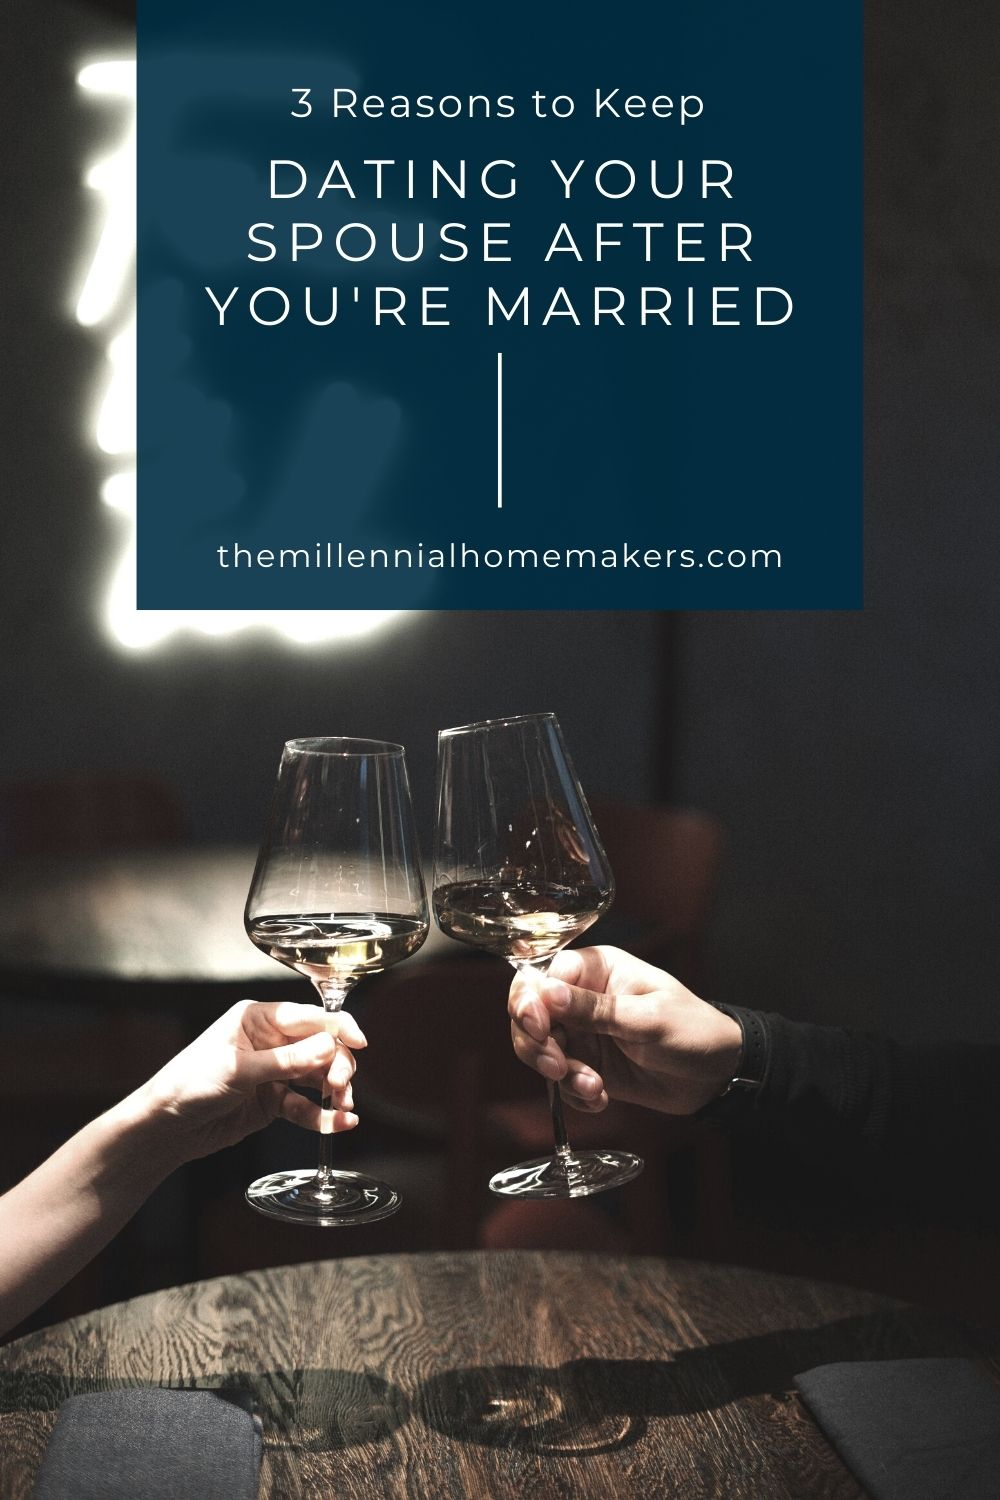 husband and wife clinking wine glasses on date night